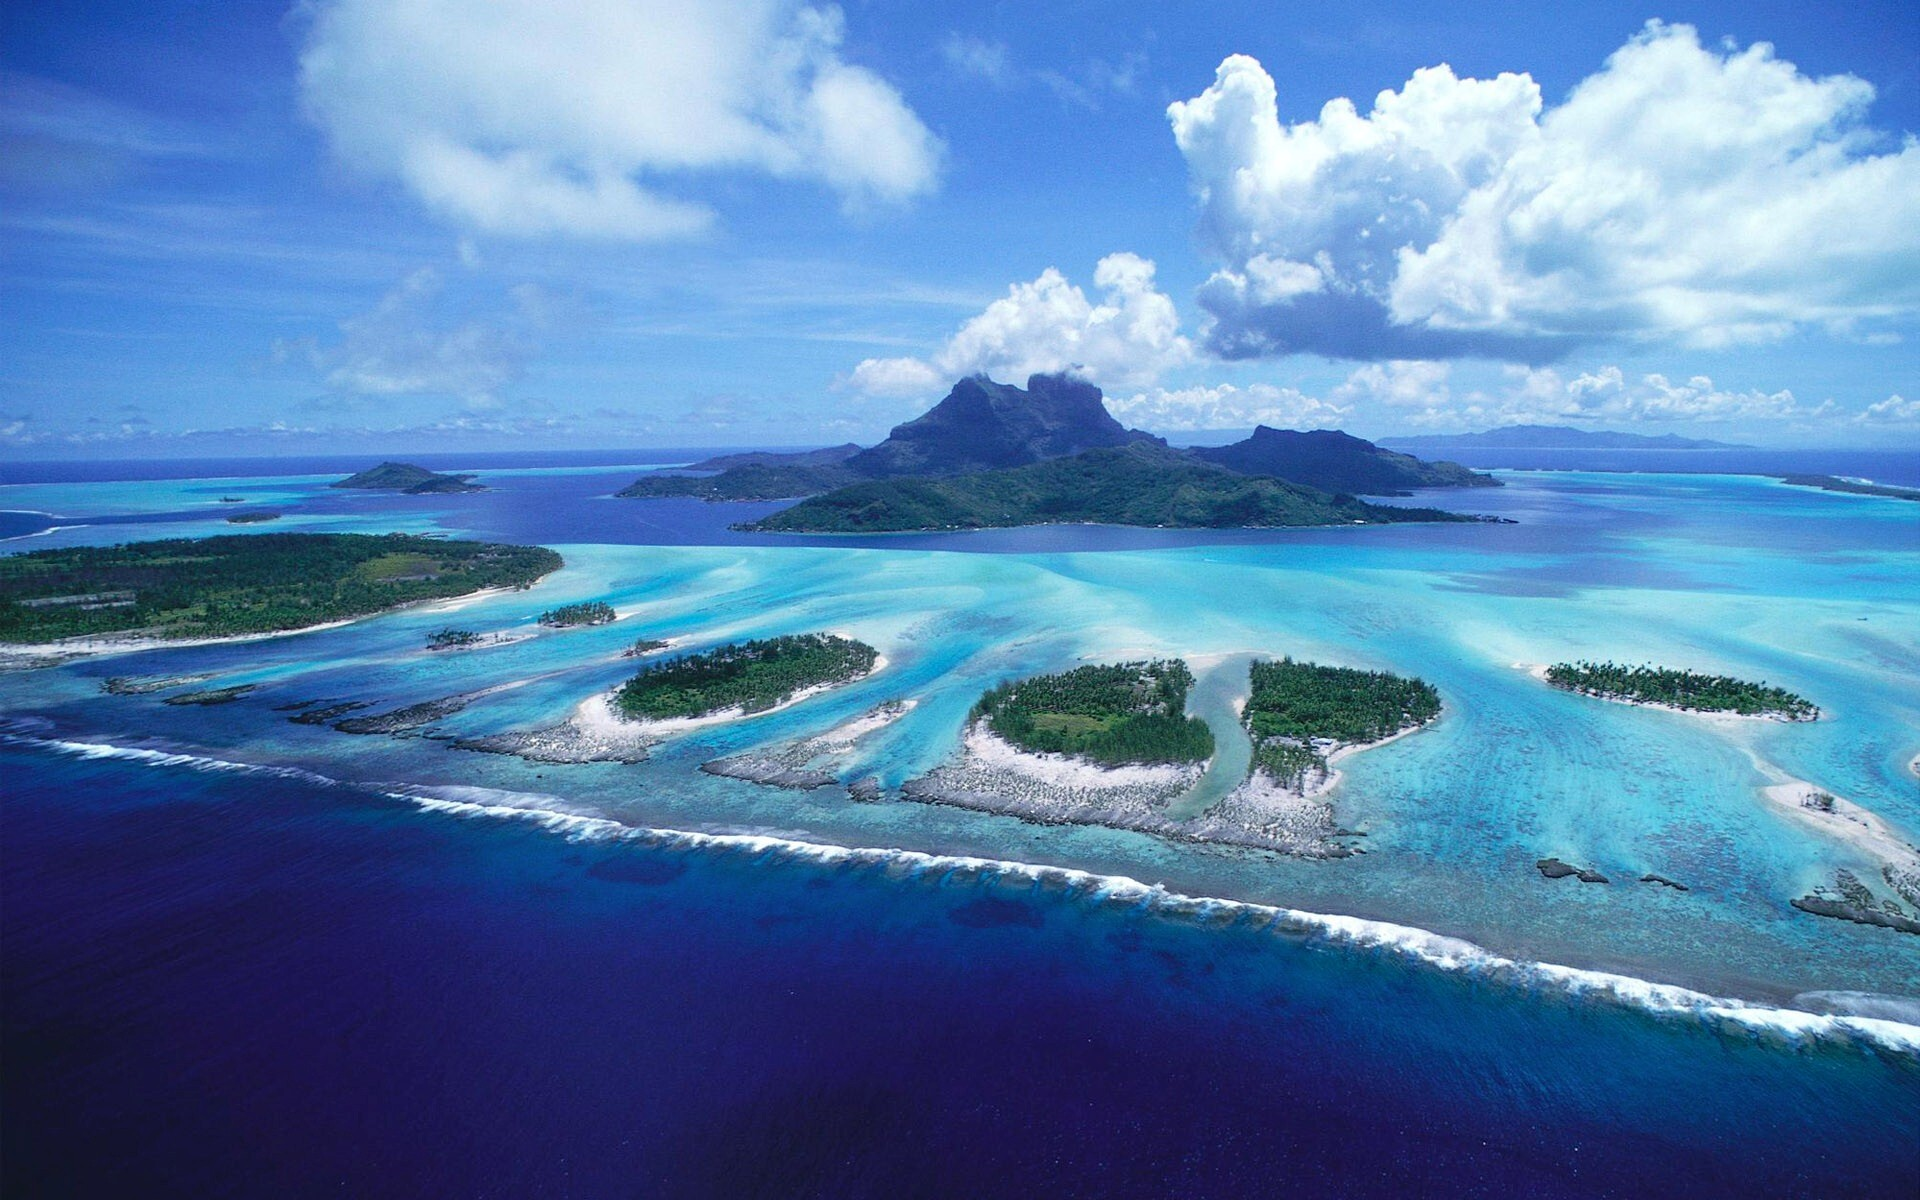 bora bora beautiful island in french polynesia hd wallpaper | hd